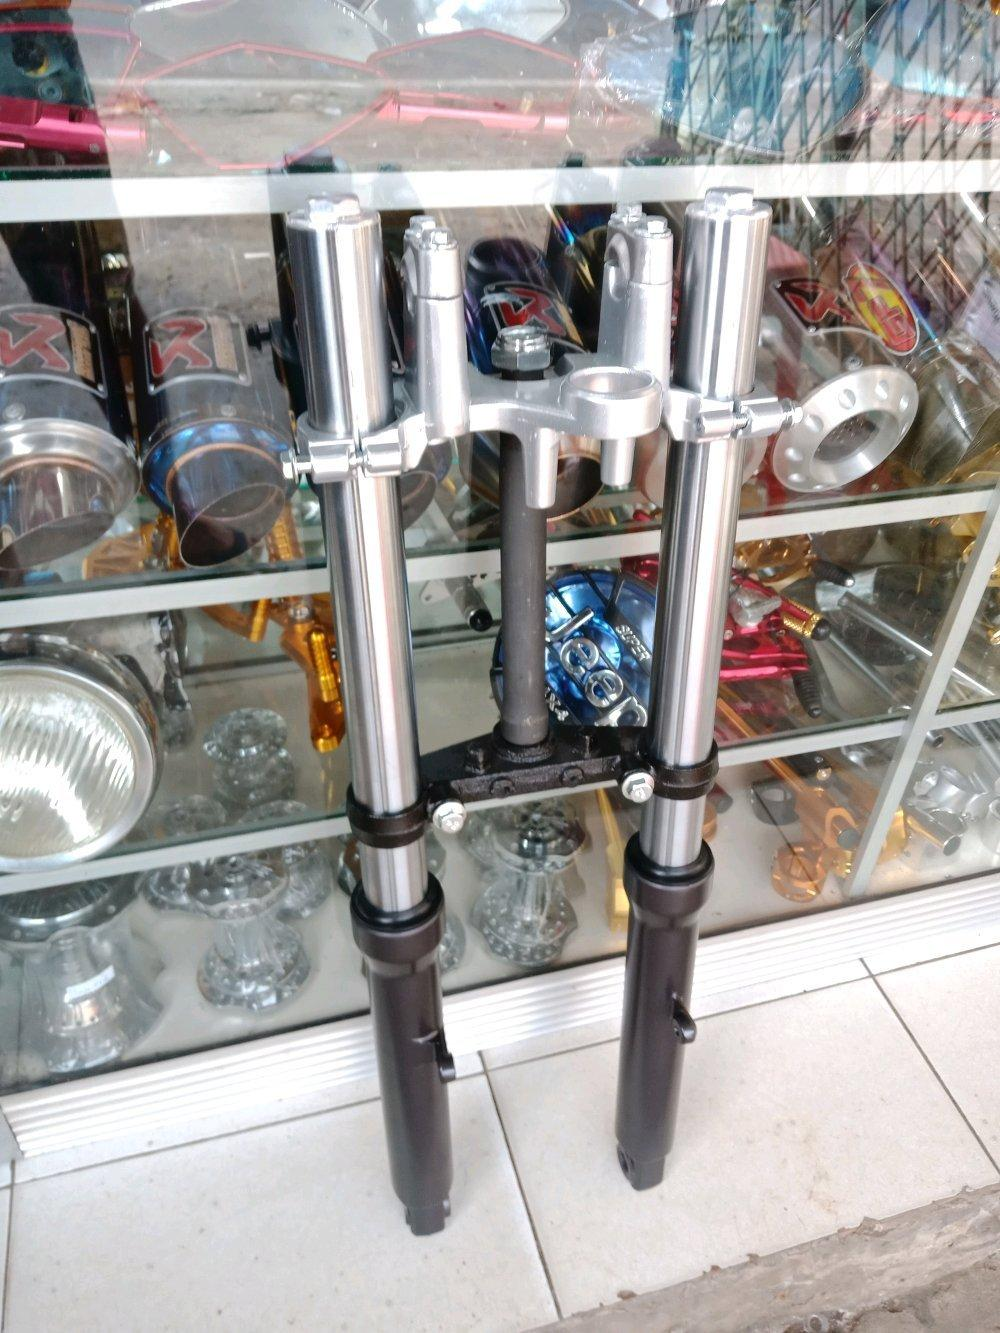 Shock Depan Yamaha Byson Satu Set As Shock - Segitiga Ride It Custom Modif